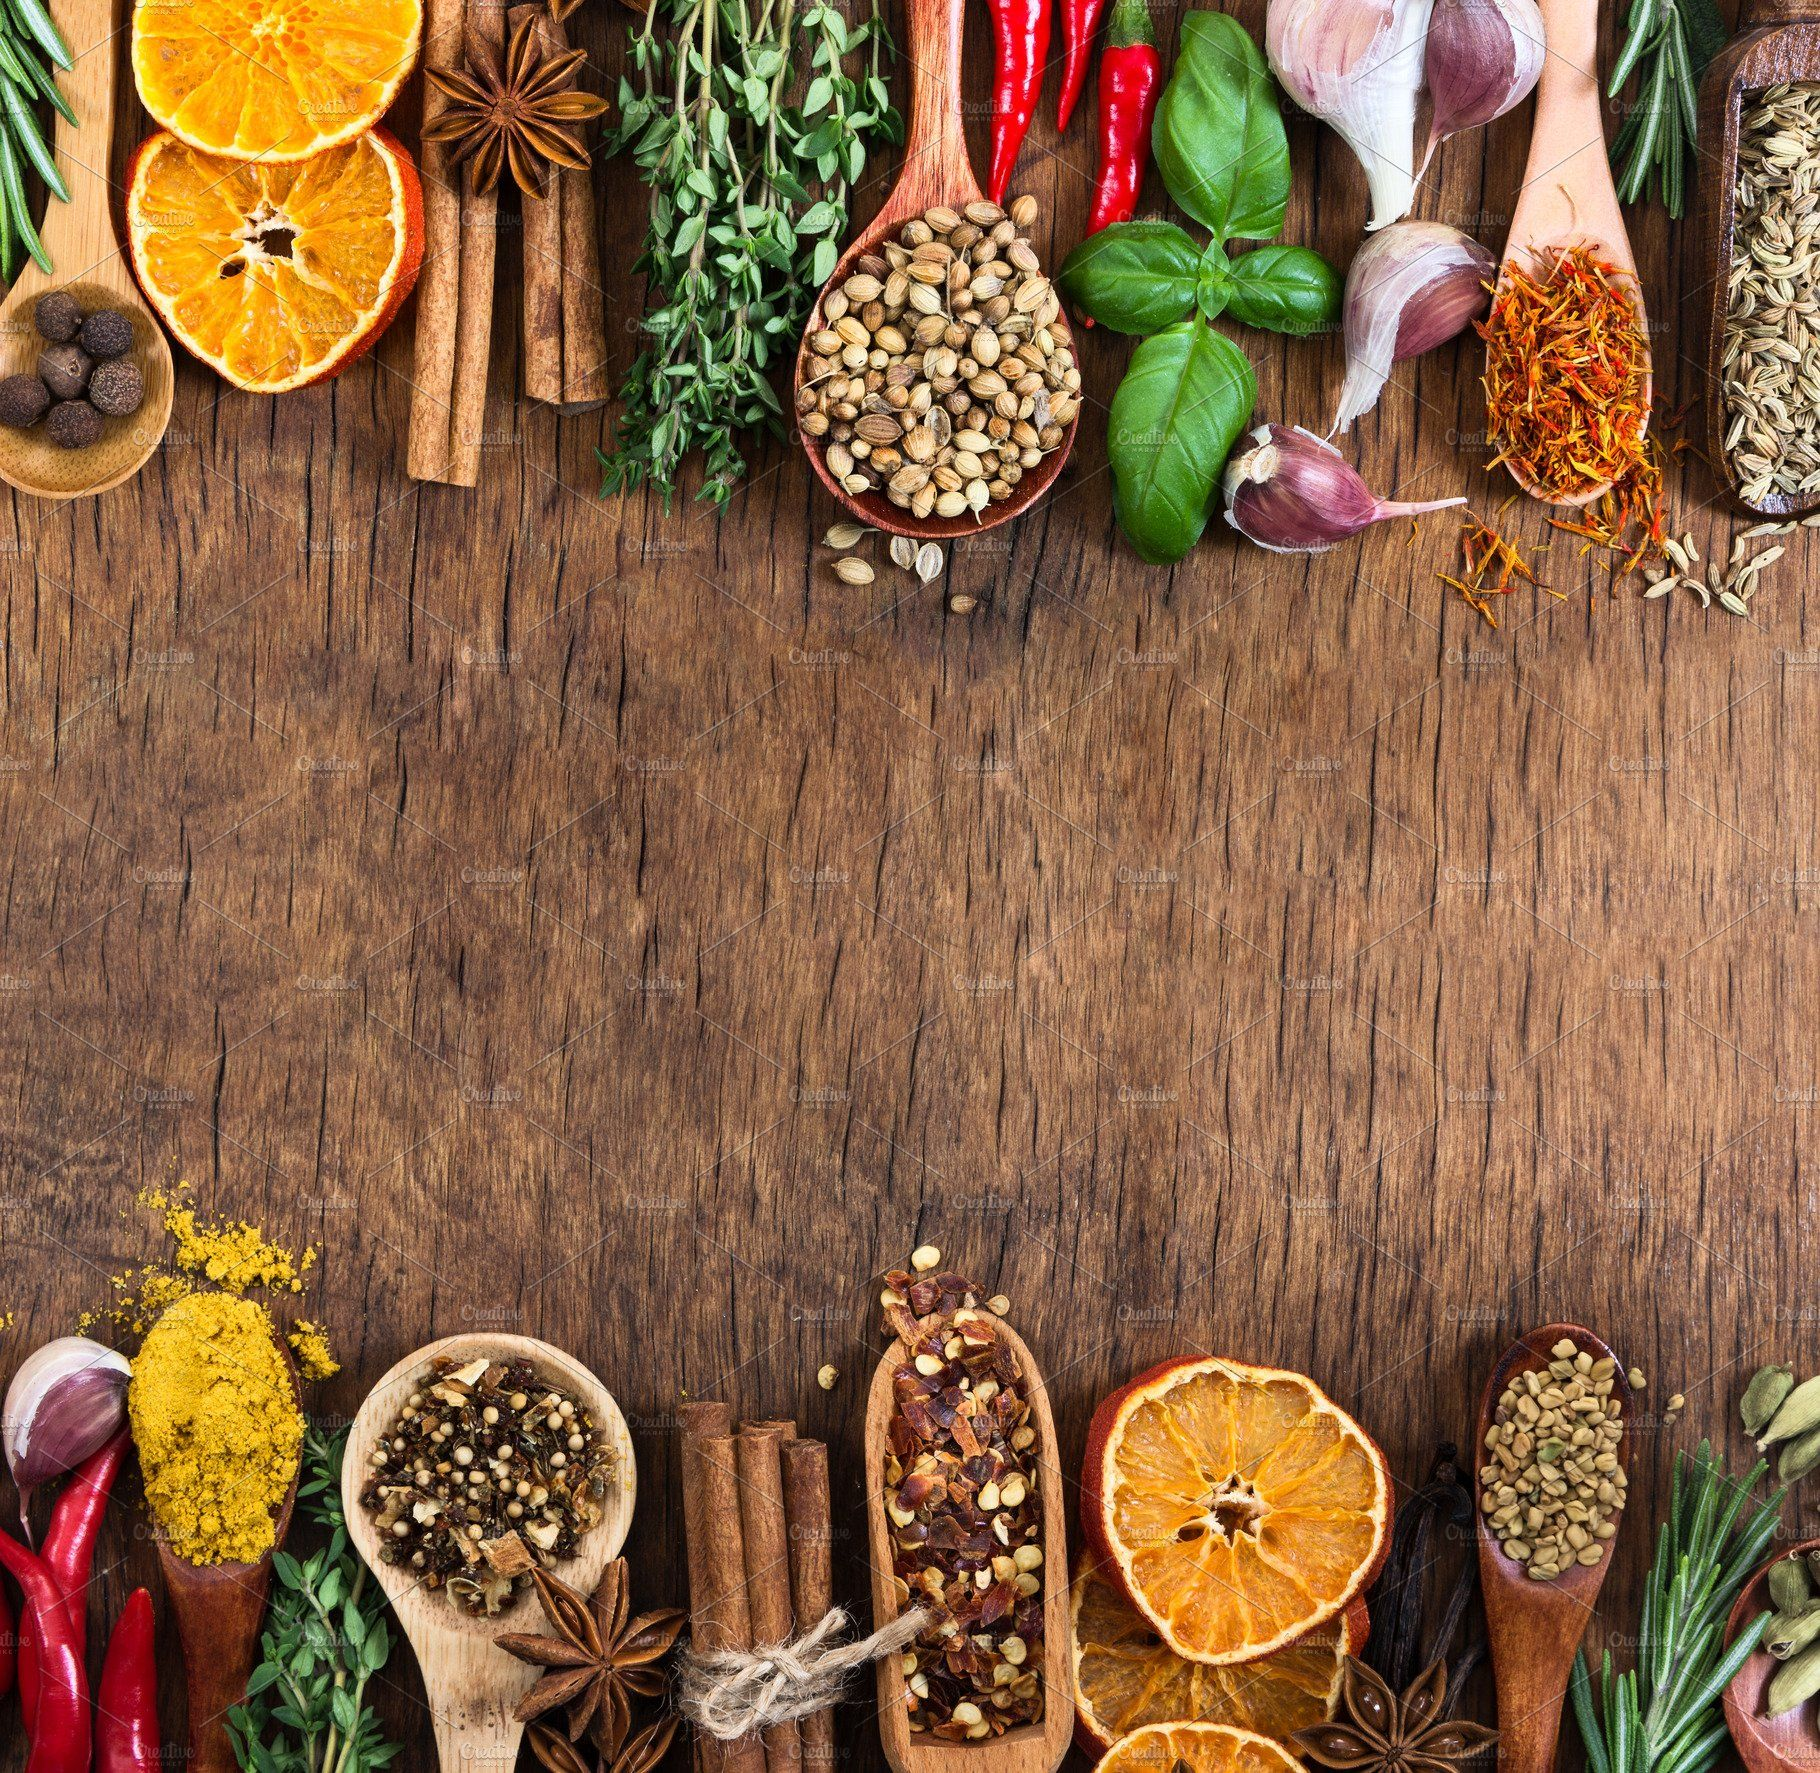 Various Spices On Wooden Background In 2020 Food Background Wallpapers Wooden Background Food Wallpaper